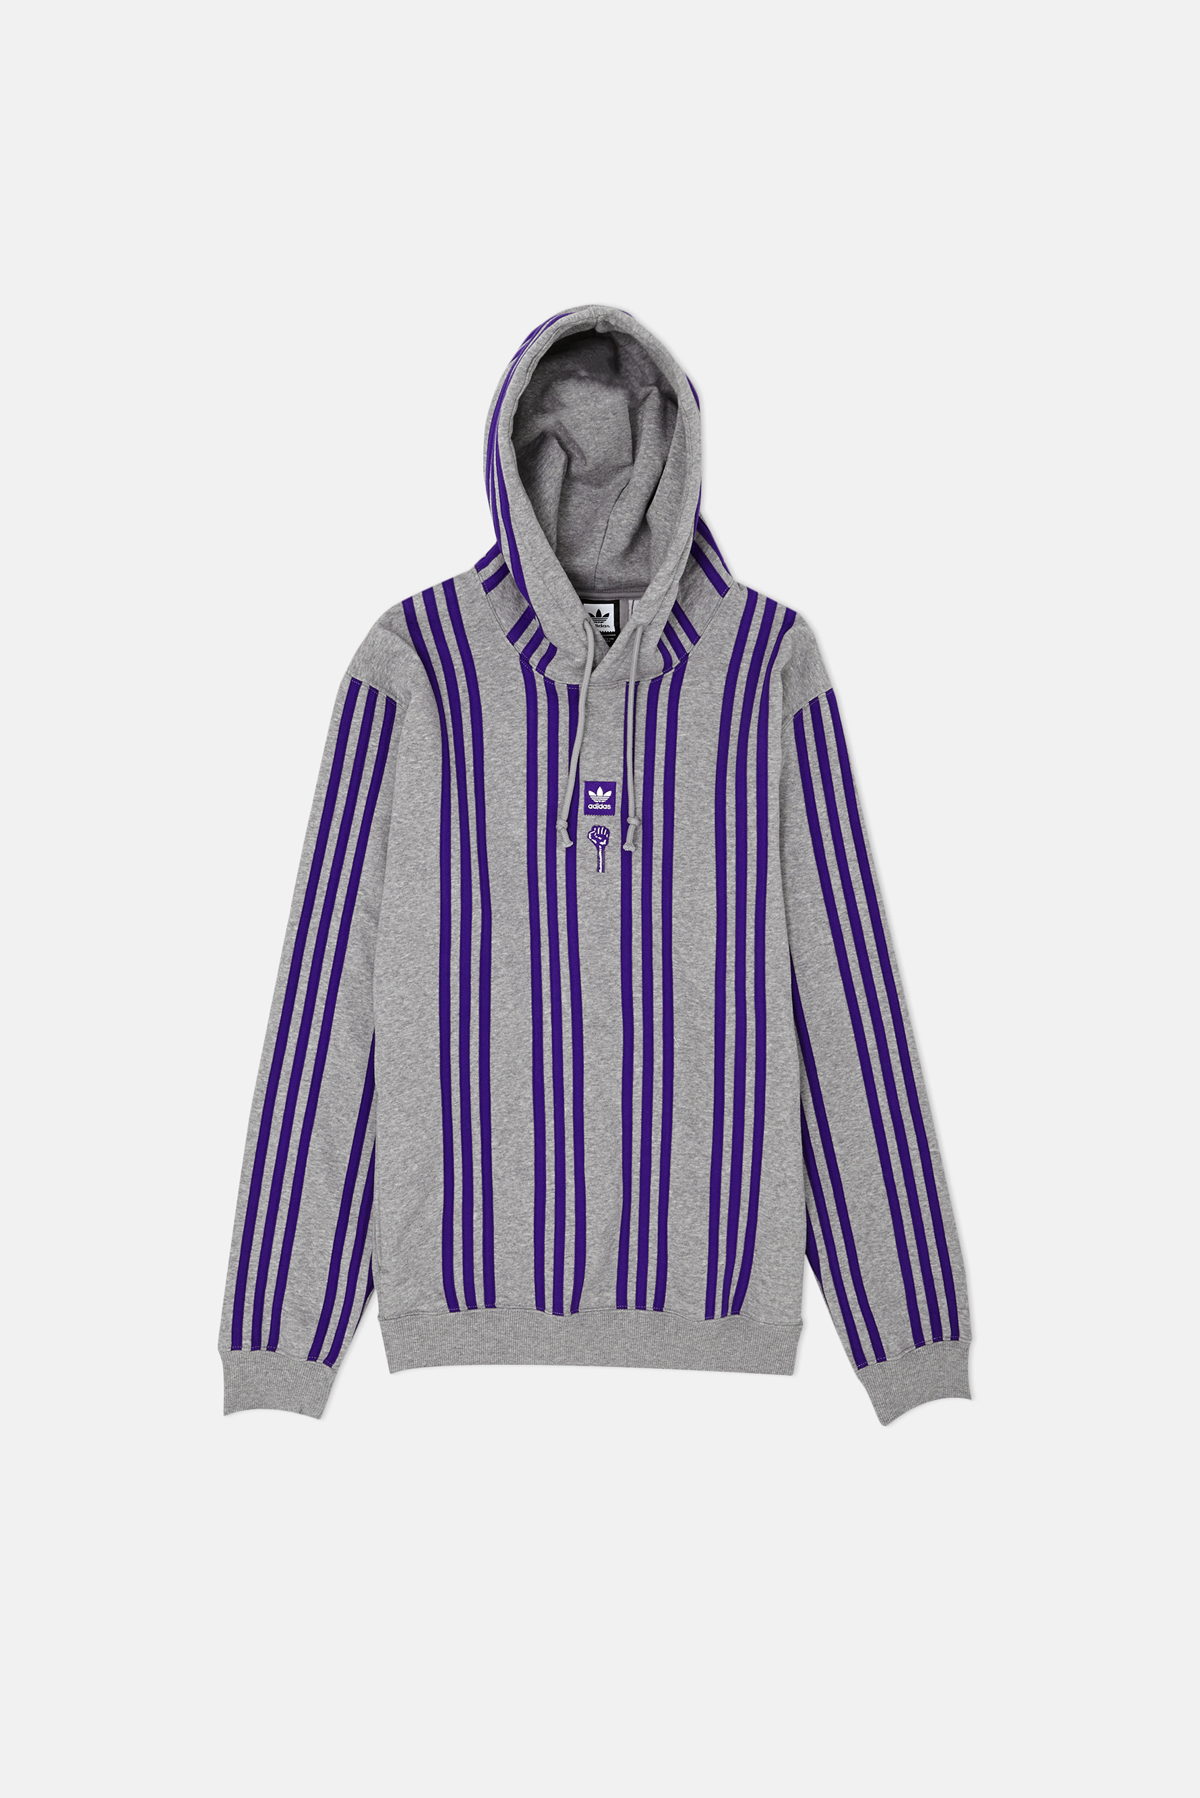 Adidas Hardies Hoodie available from Priory